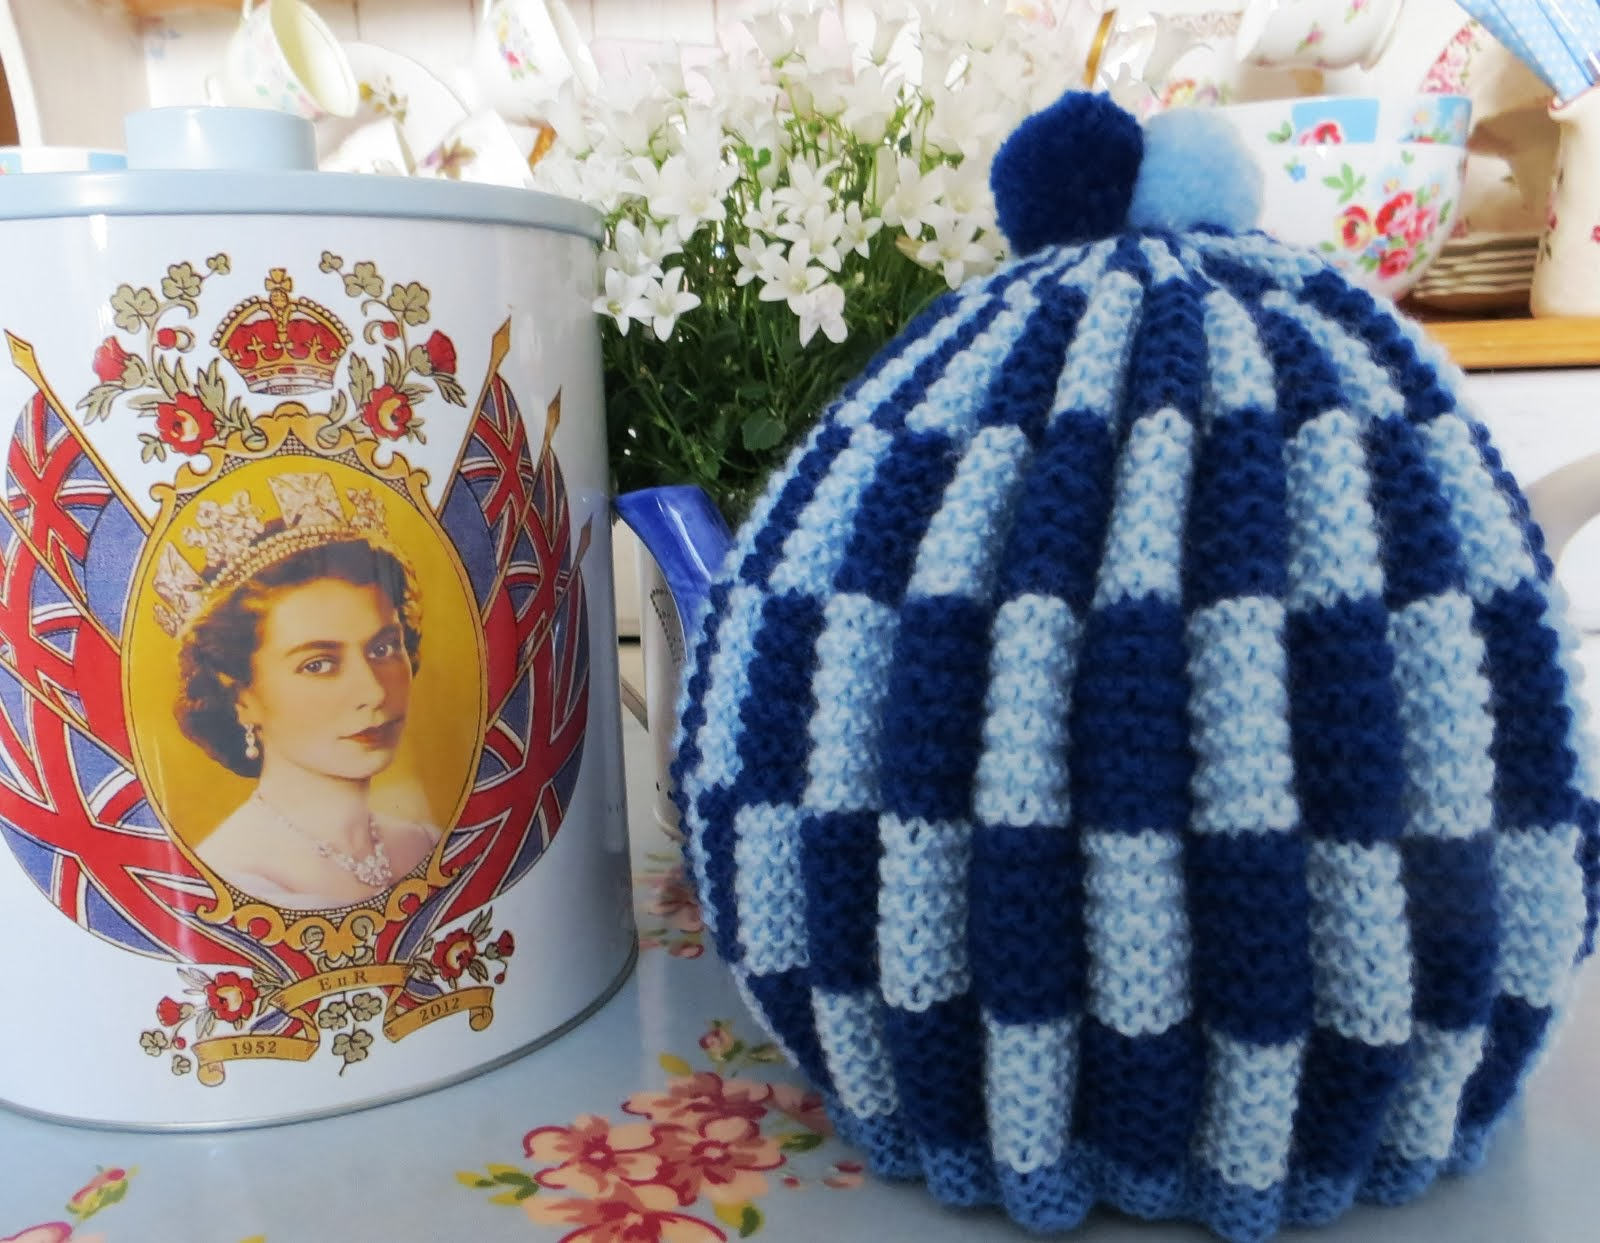 I love knitting tea cosies!